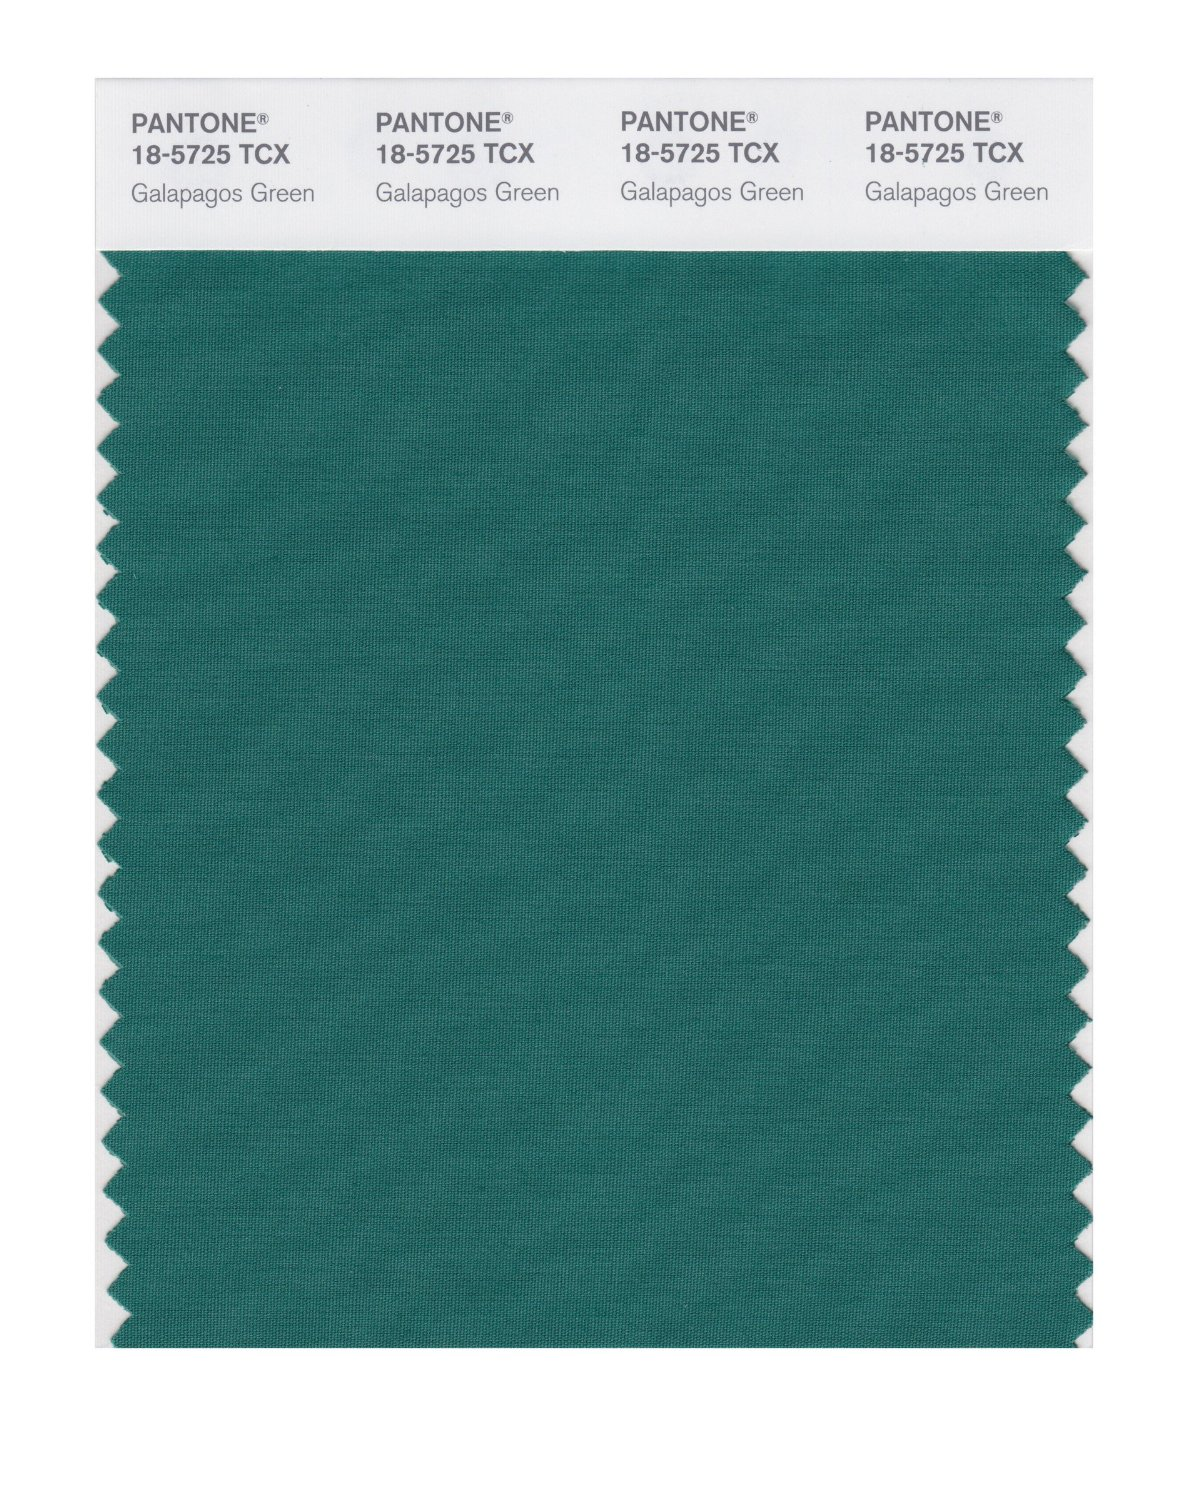 Pantone Smart Swatch 18-5725 Galapagos Green